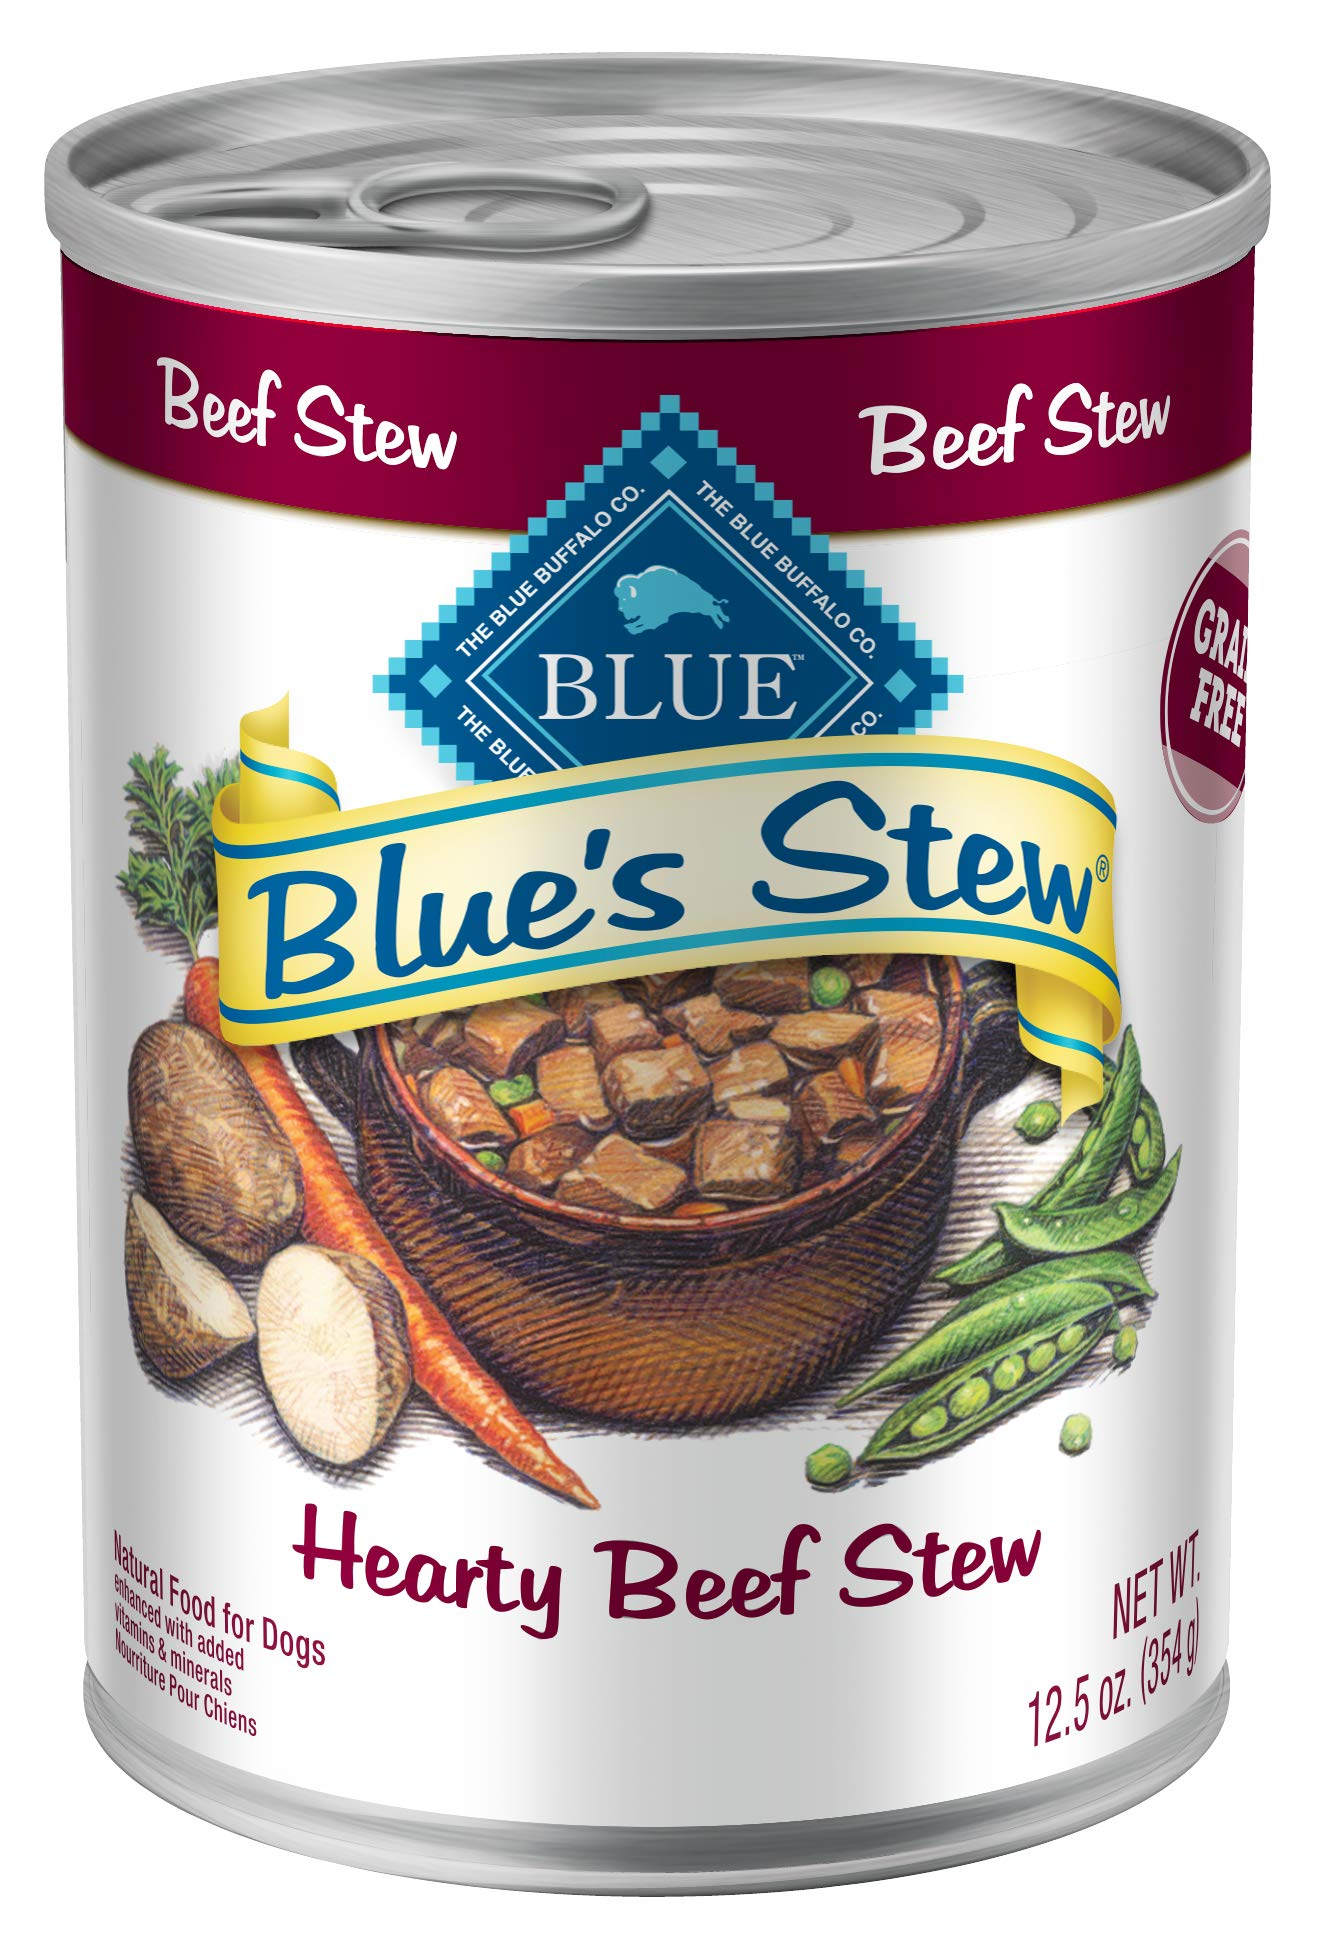 Blue Buffalo Blue's Stew Natural Adult Wet Dog Food, Beef Stew 12.5-oz can (Pack of 12) by Blue Buffalo